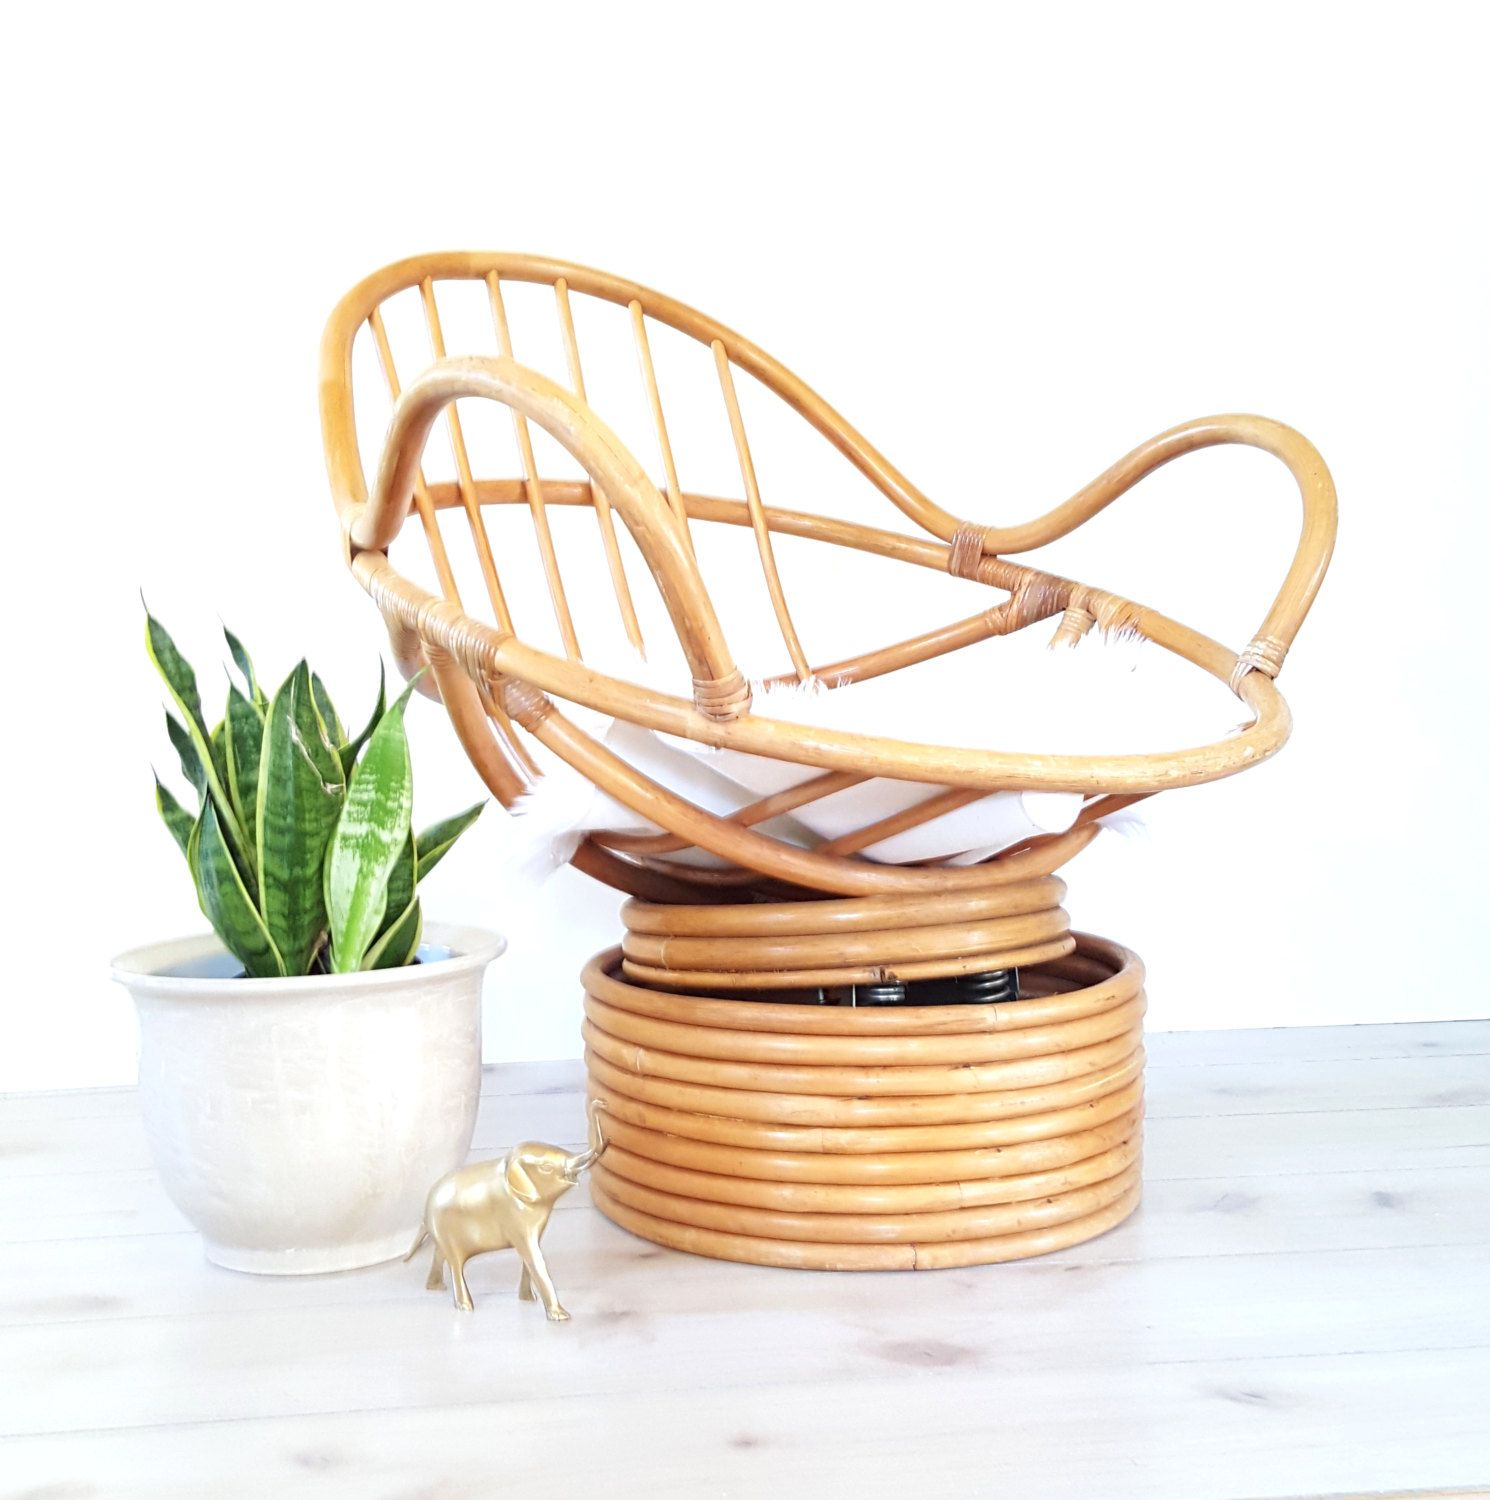 Bamboo Chair Mid Century Mod Rattan Bamboo POD CHAIR Rocking